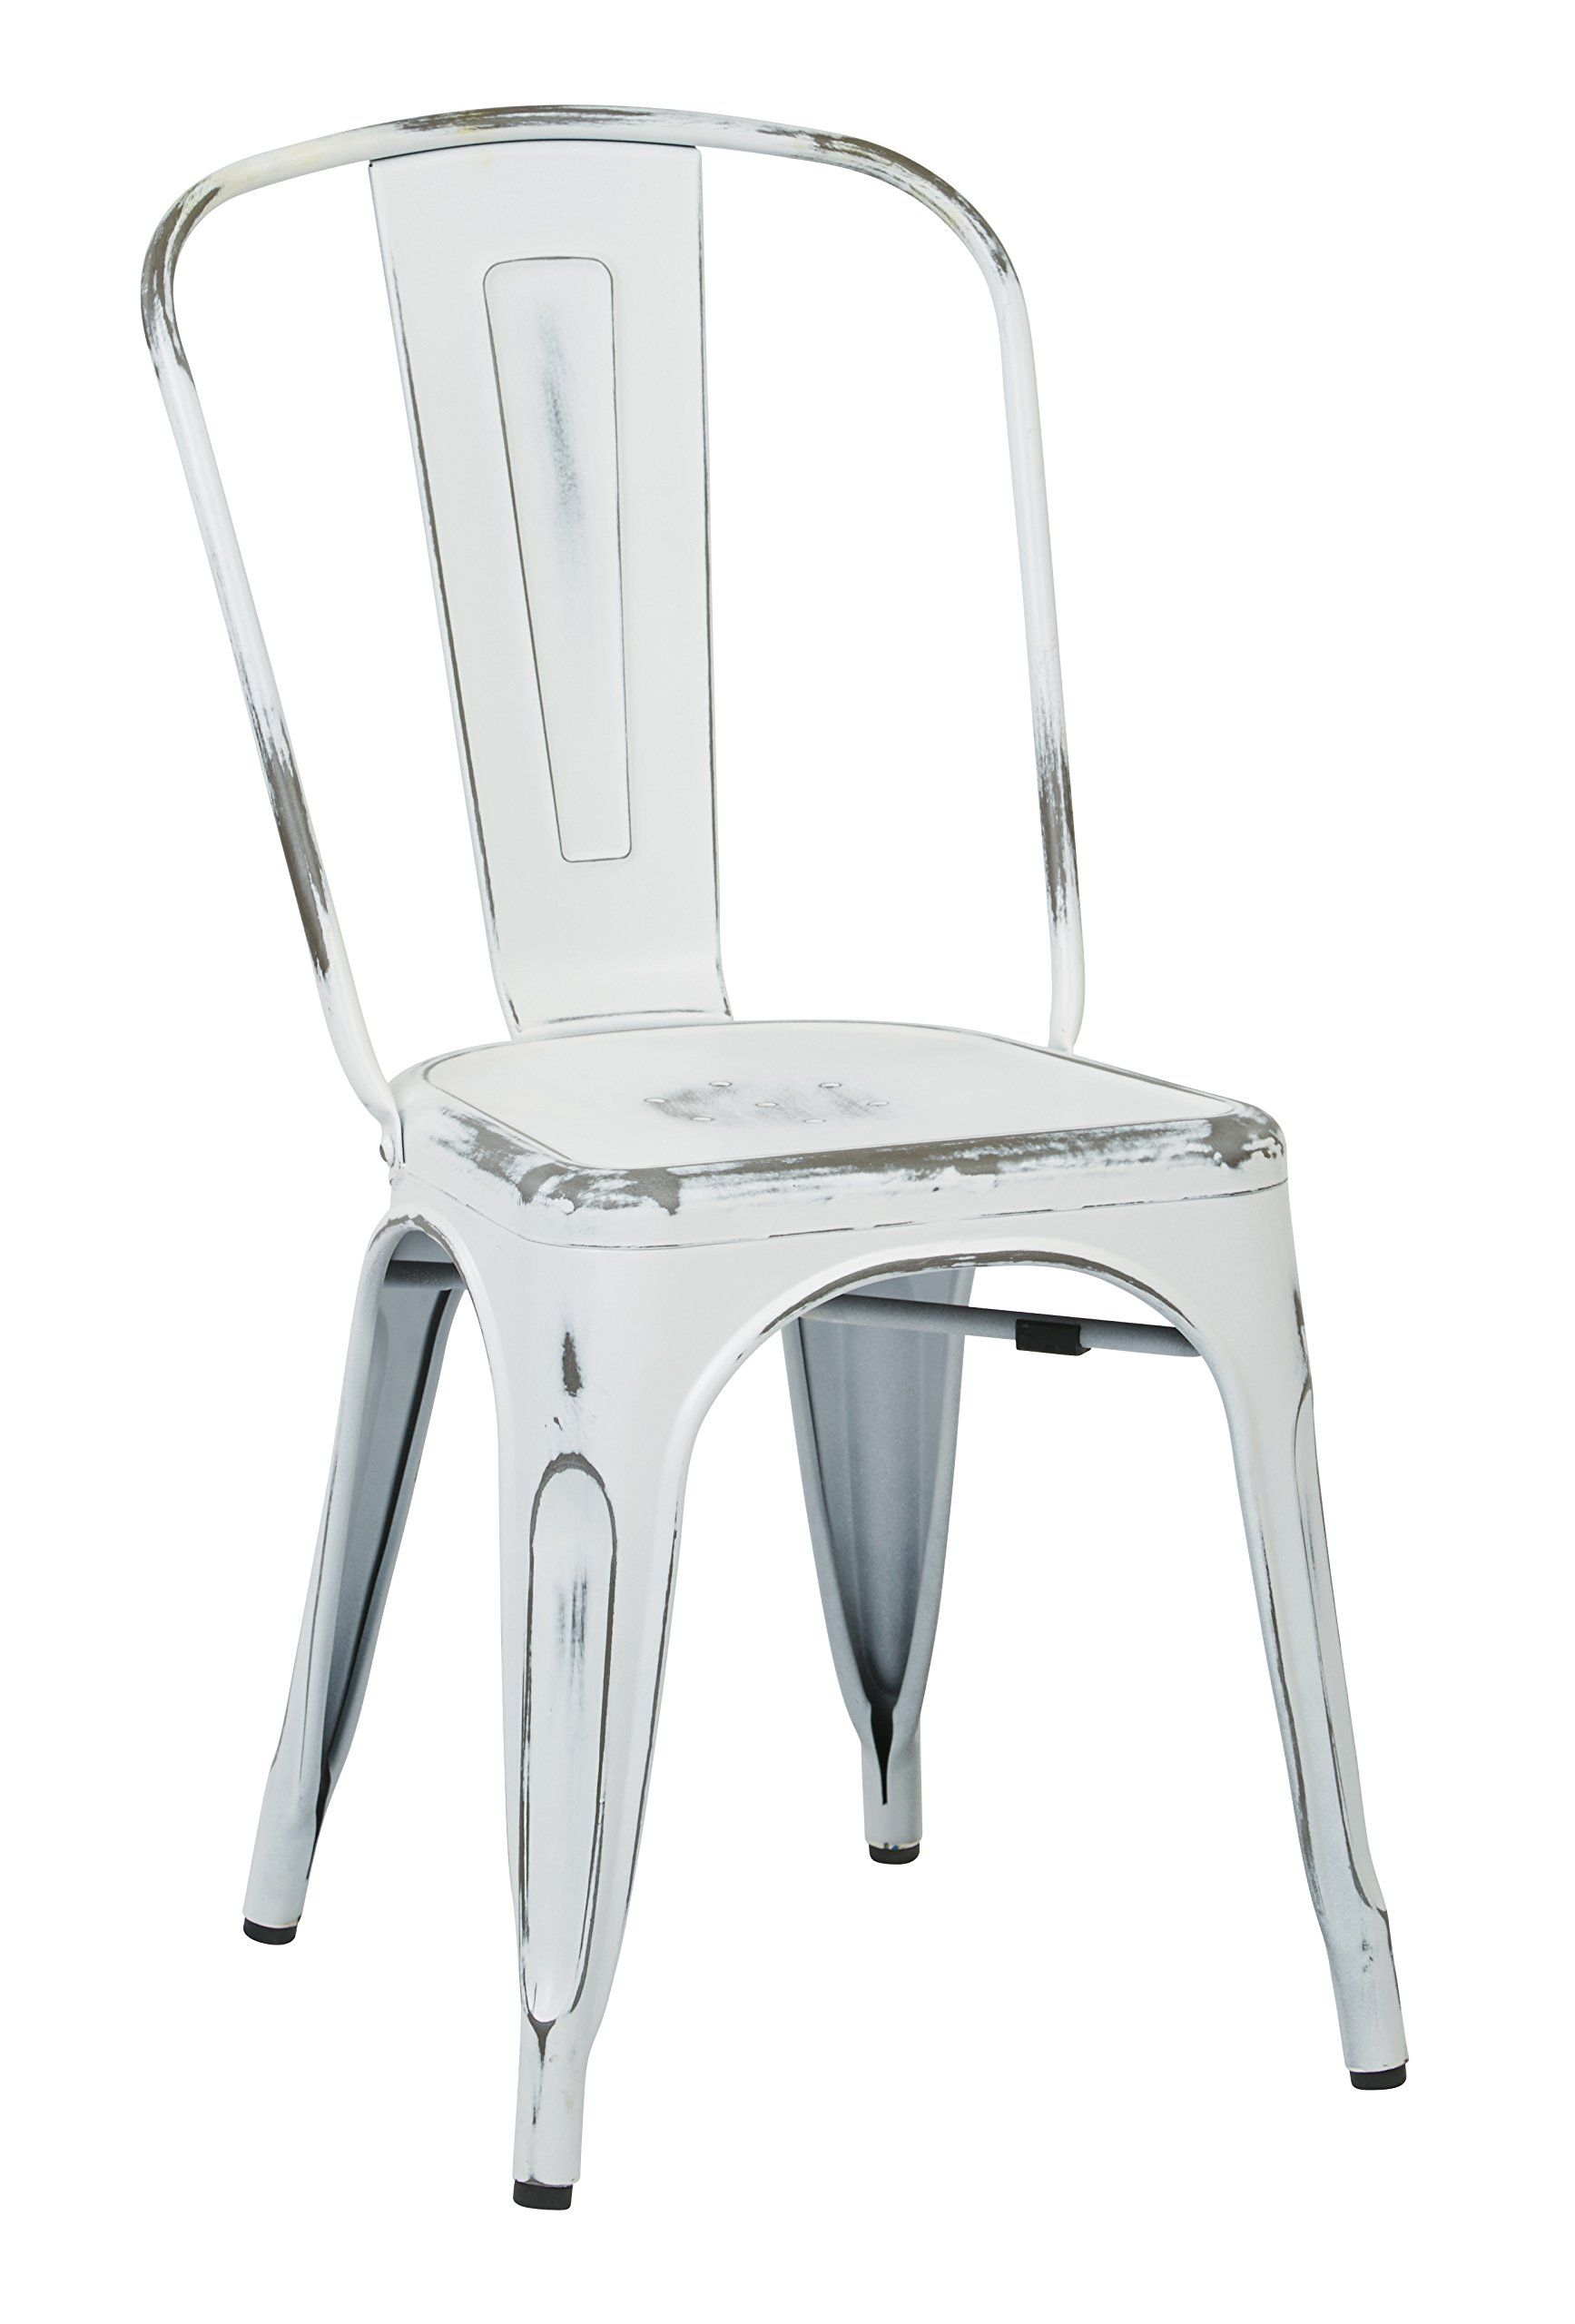 White Metal Chair Vintage Metal Dining Chair Distressed White Amazon